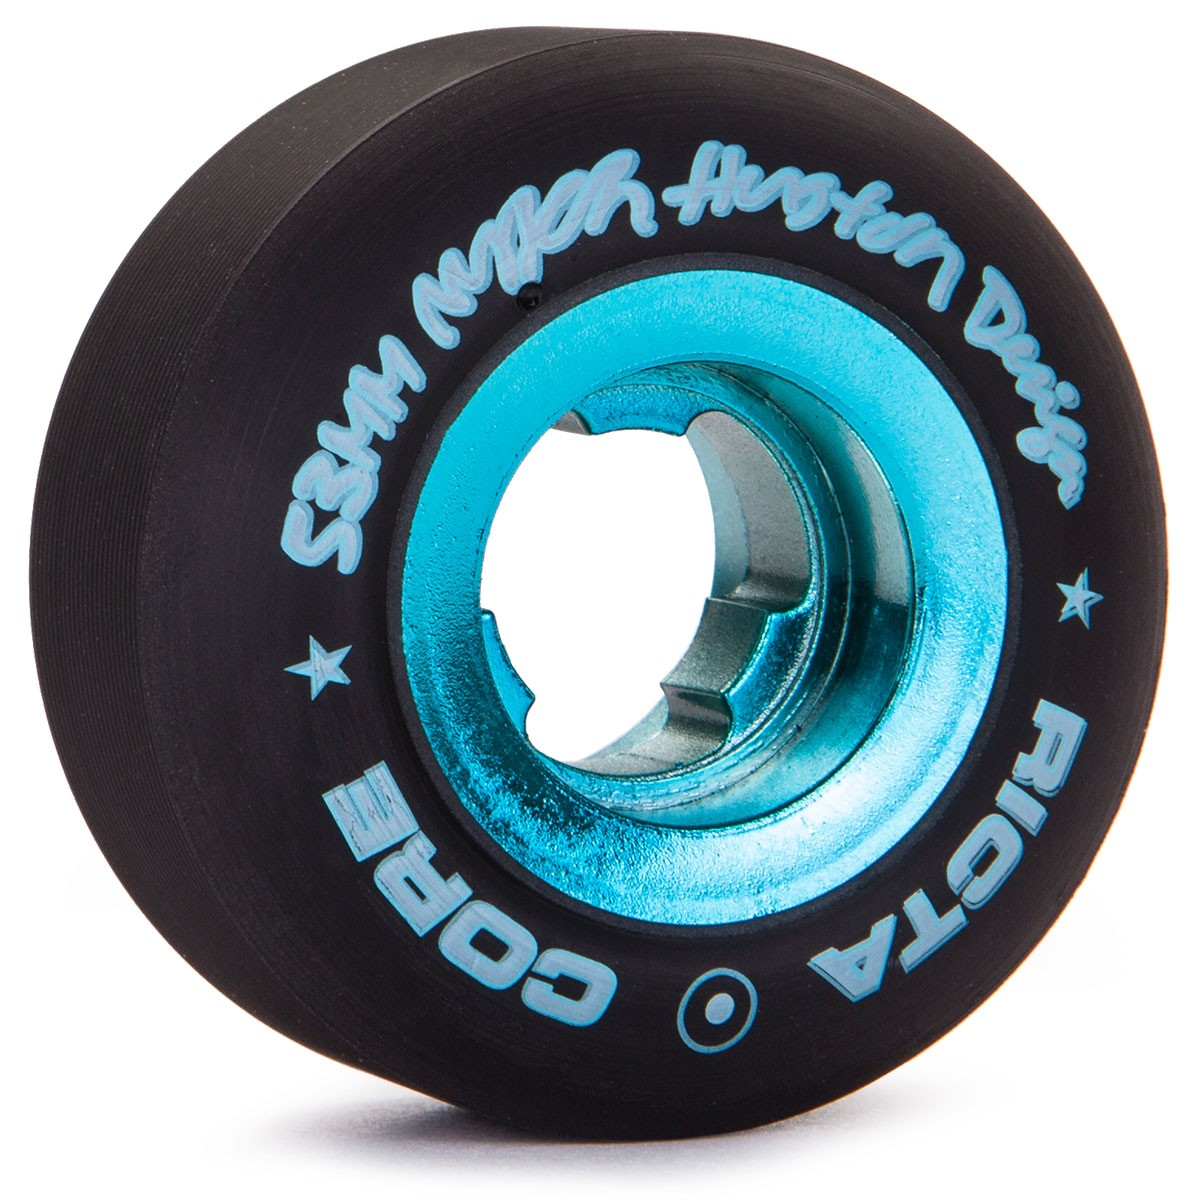 Ricta Nyjah Huston Chrome Core Skateboard Wheels - 53mm - Black / Teal - 81b